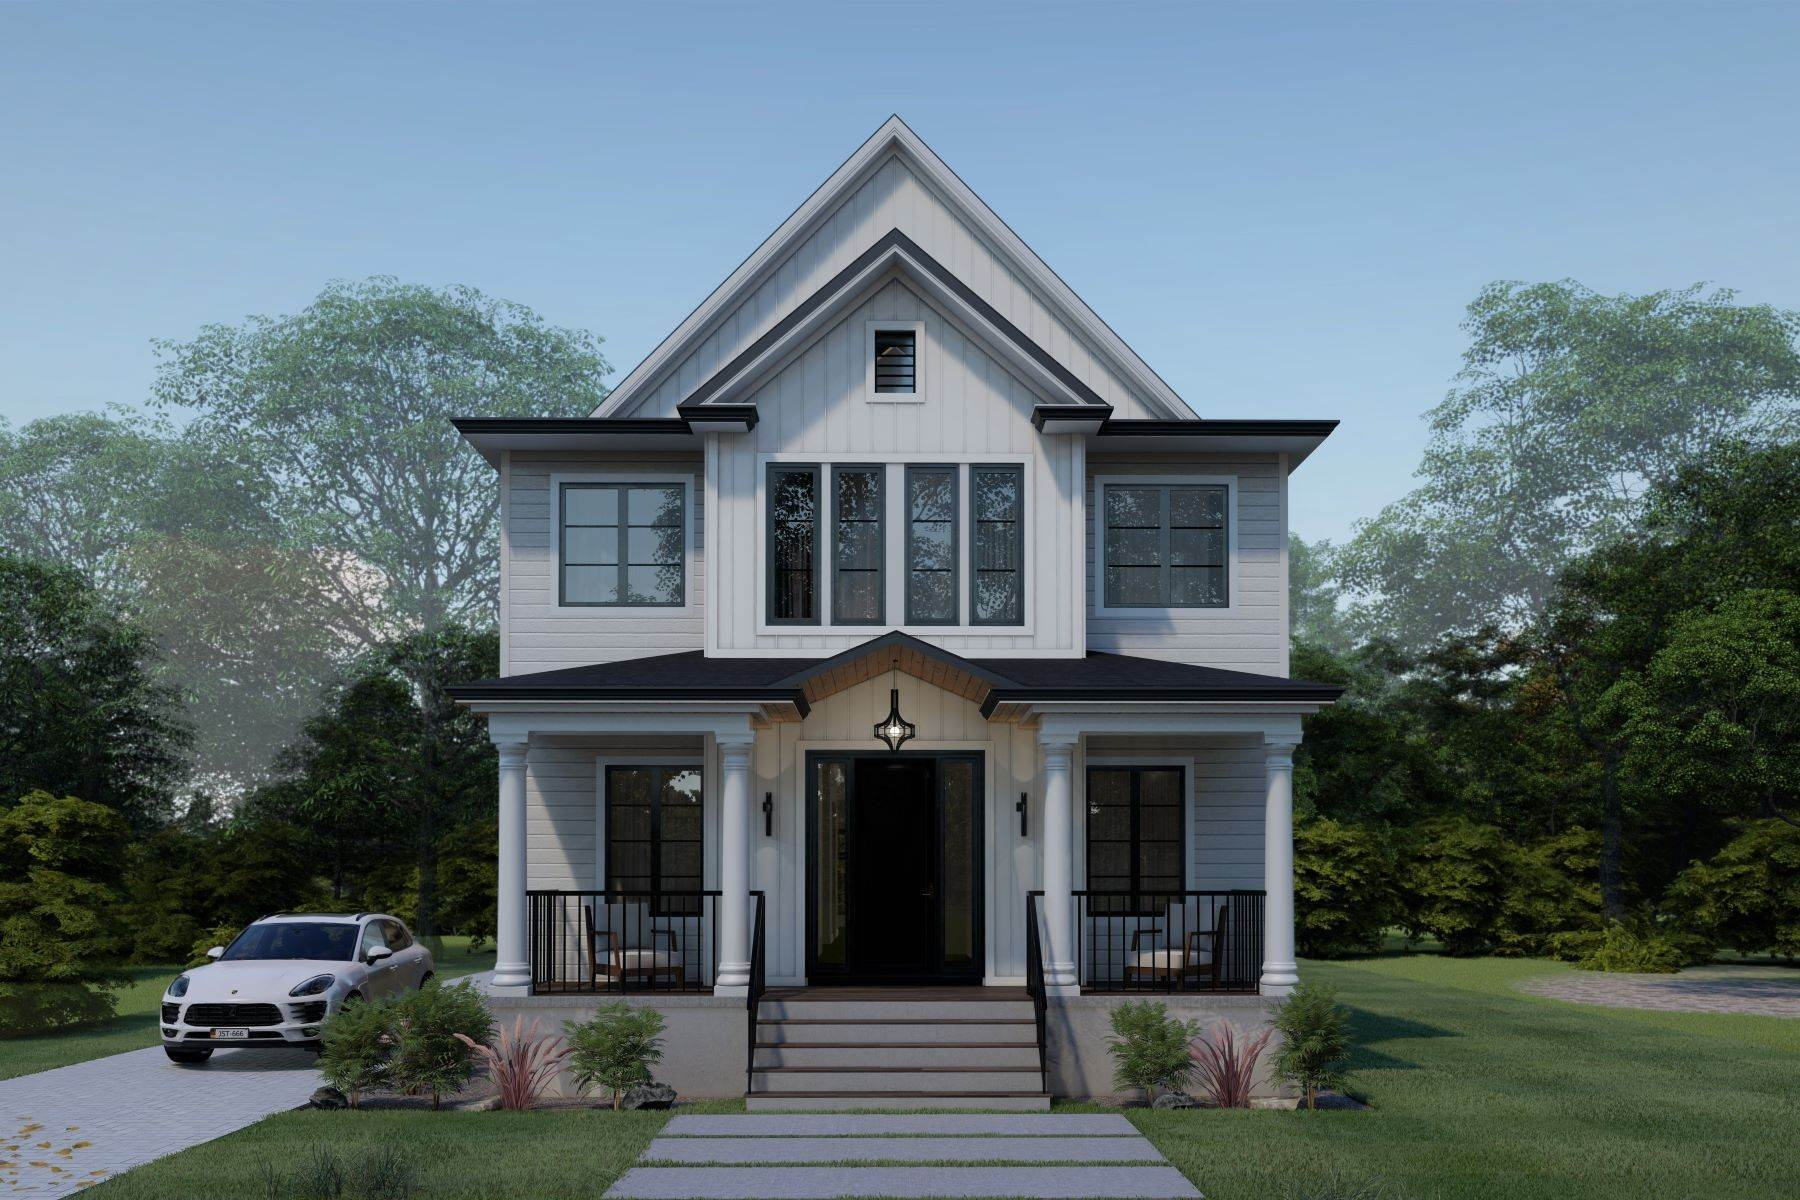 Single Family Homes for Sale at Build Your Dream Home! 3922 N Tripp Avenue Chicago, Illinois 60641 United States